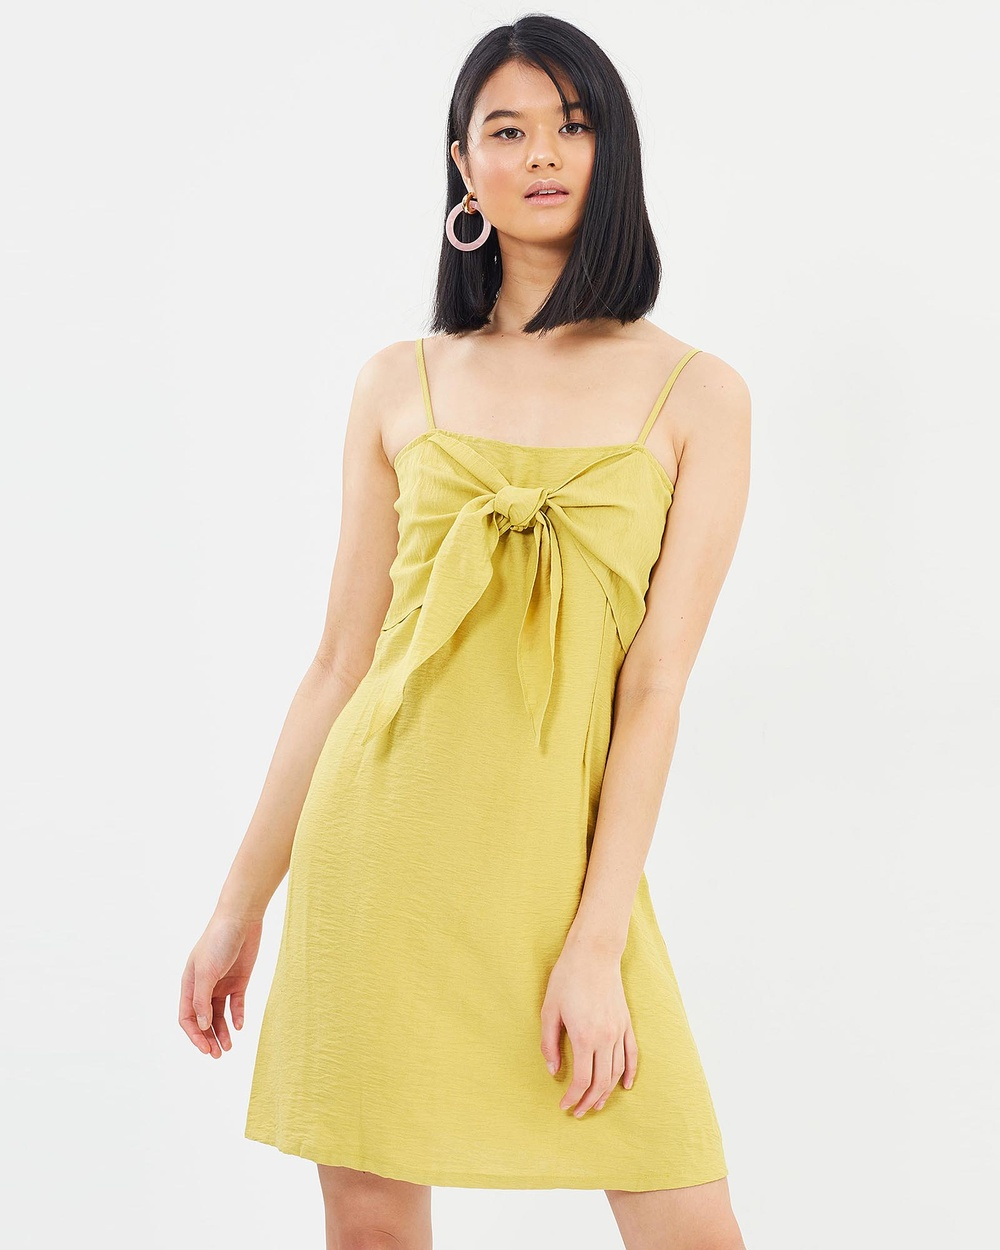 Otto Mode Prism Tie Dress Dresses Mustard Prism Tie Dress